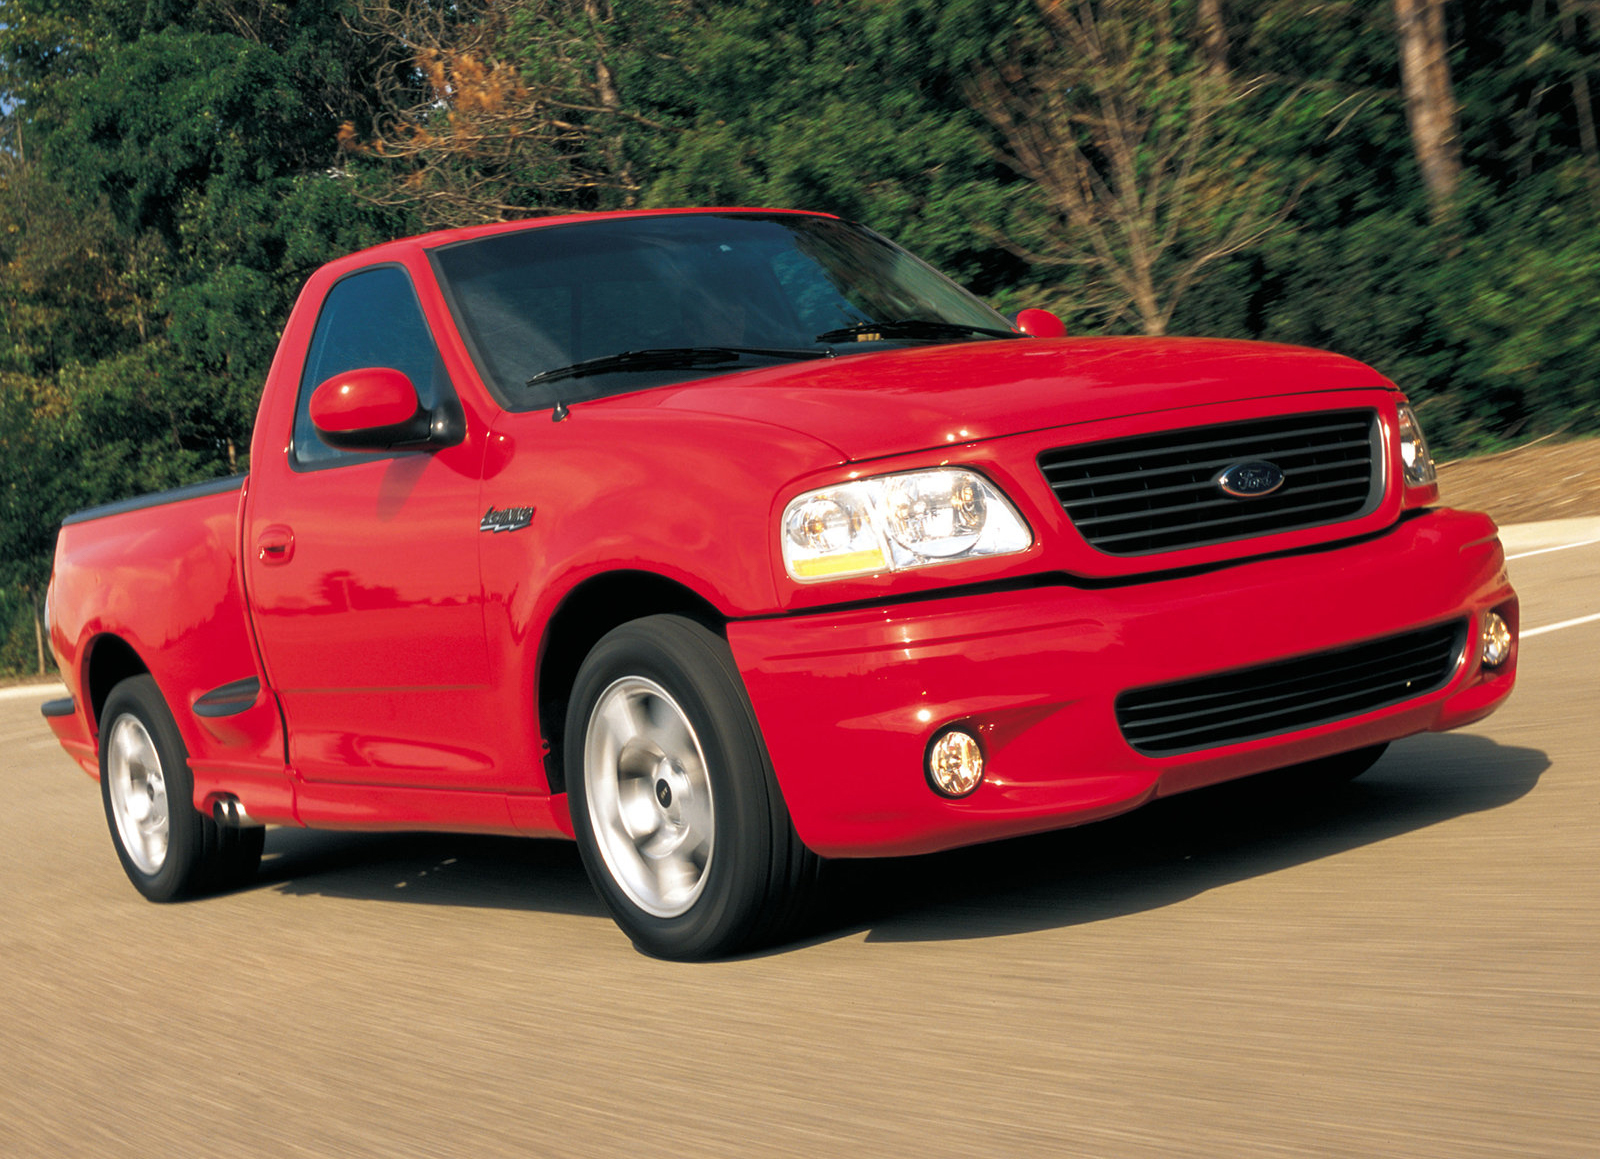 2001 Red Ford SVT Lightning Front Three-Quarter On Road Action